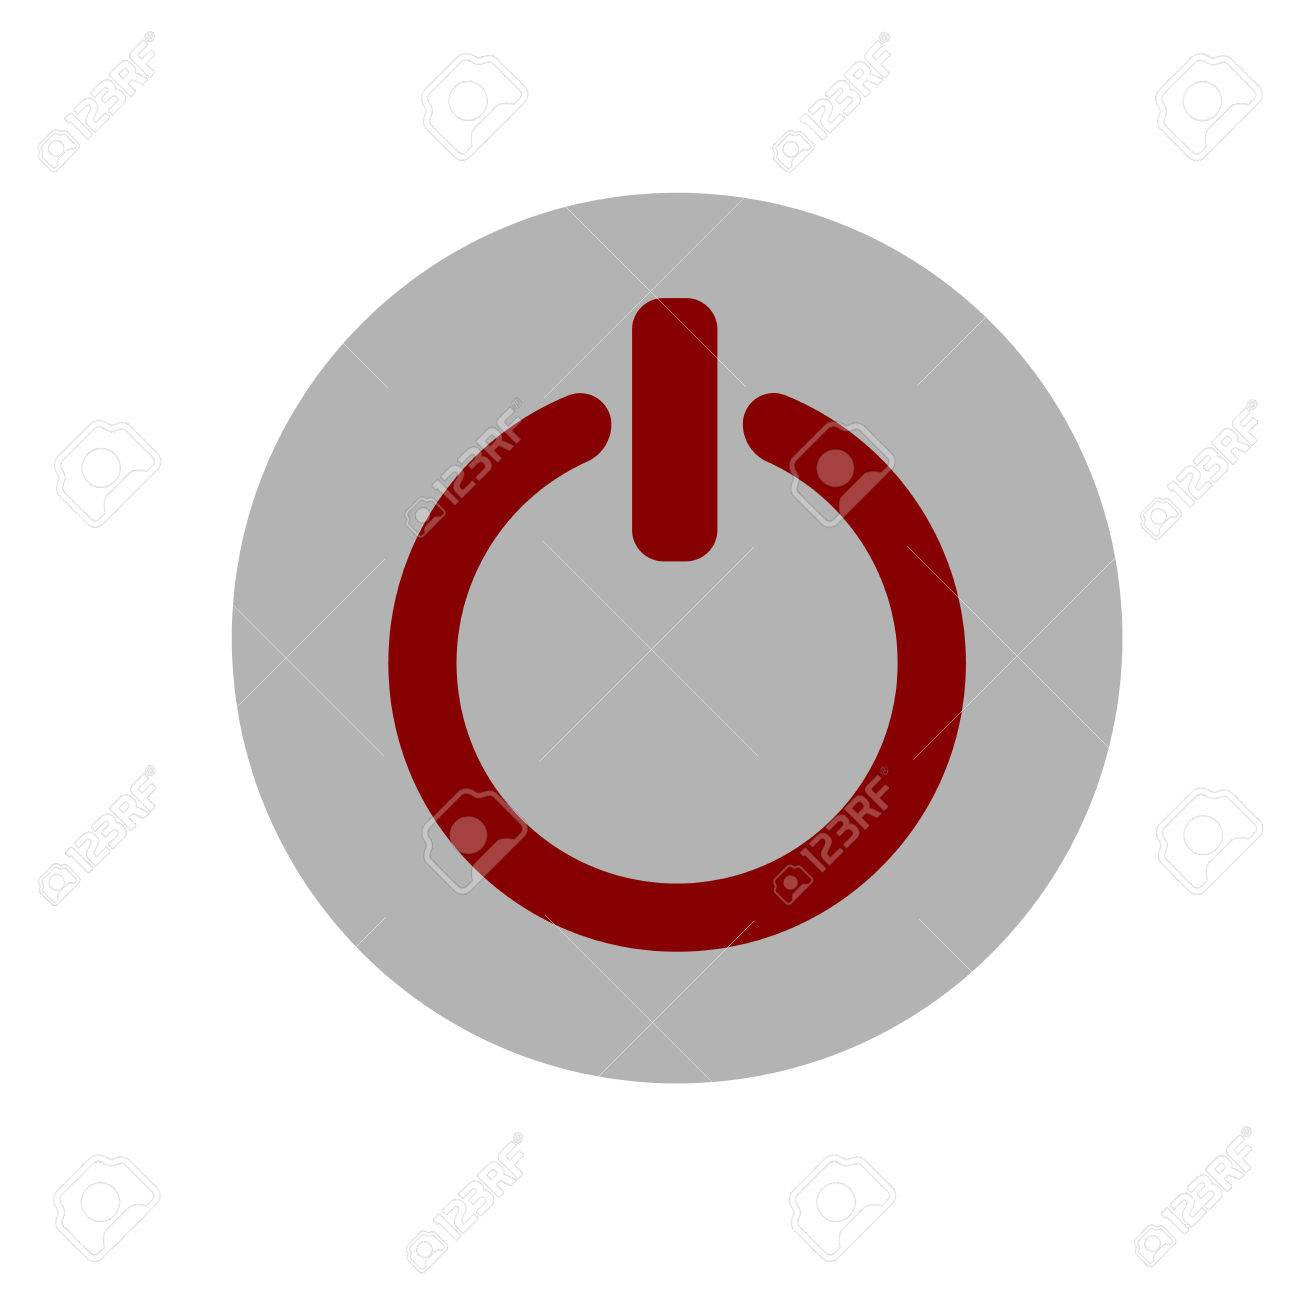 Power On Off Icon Illustration Gray And Red Icon Royalty Free